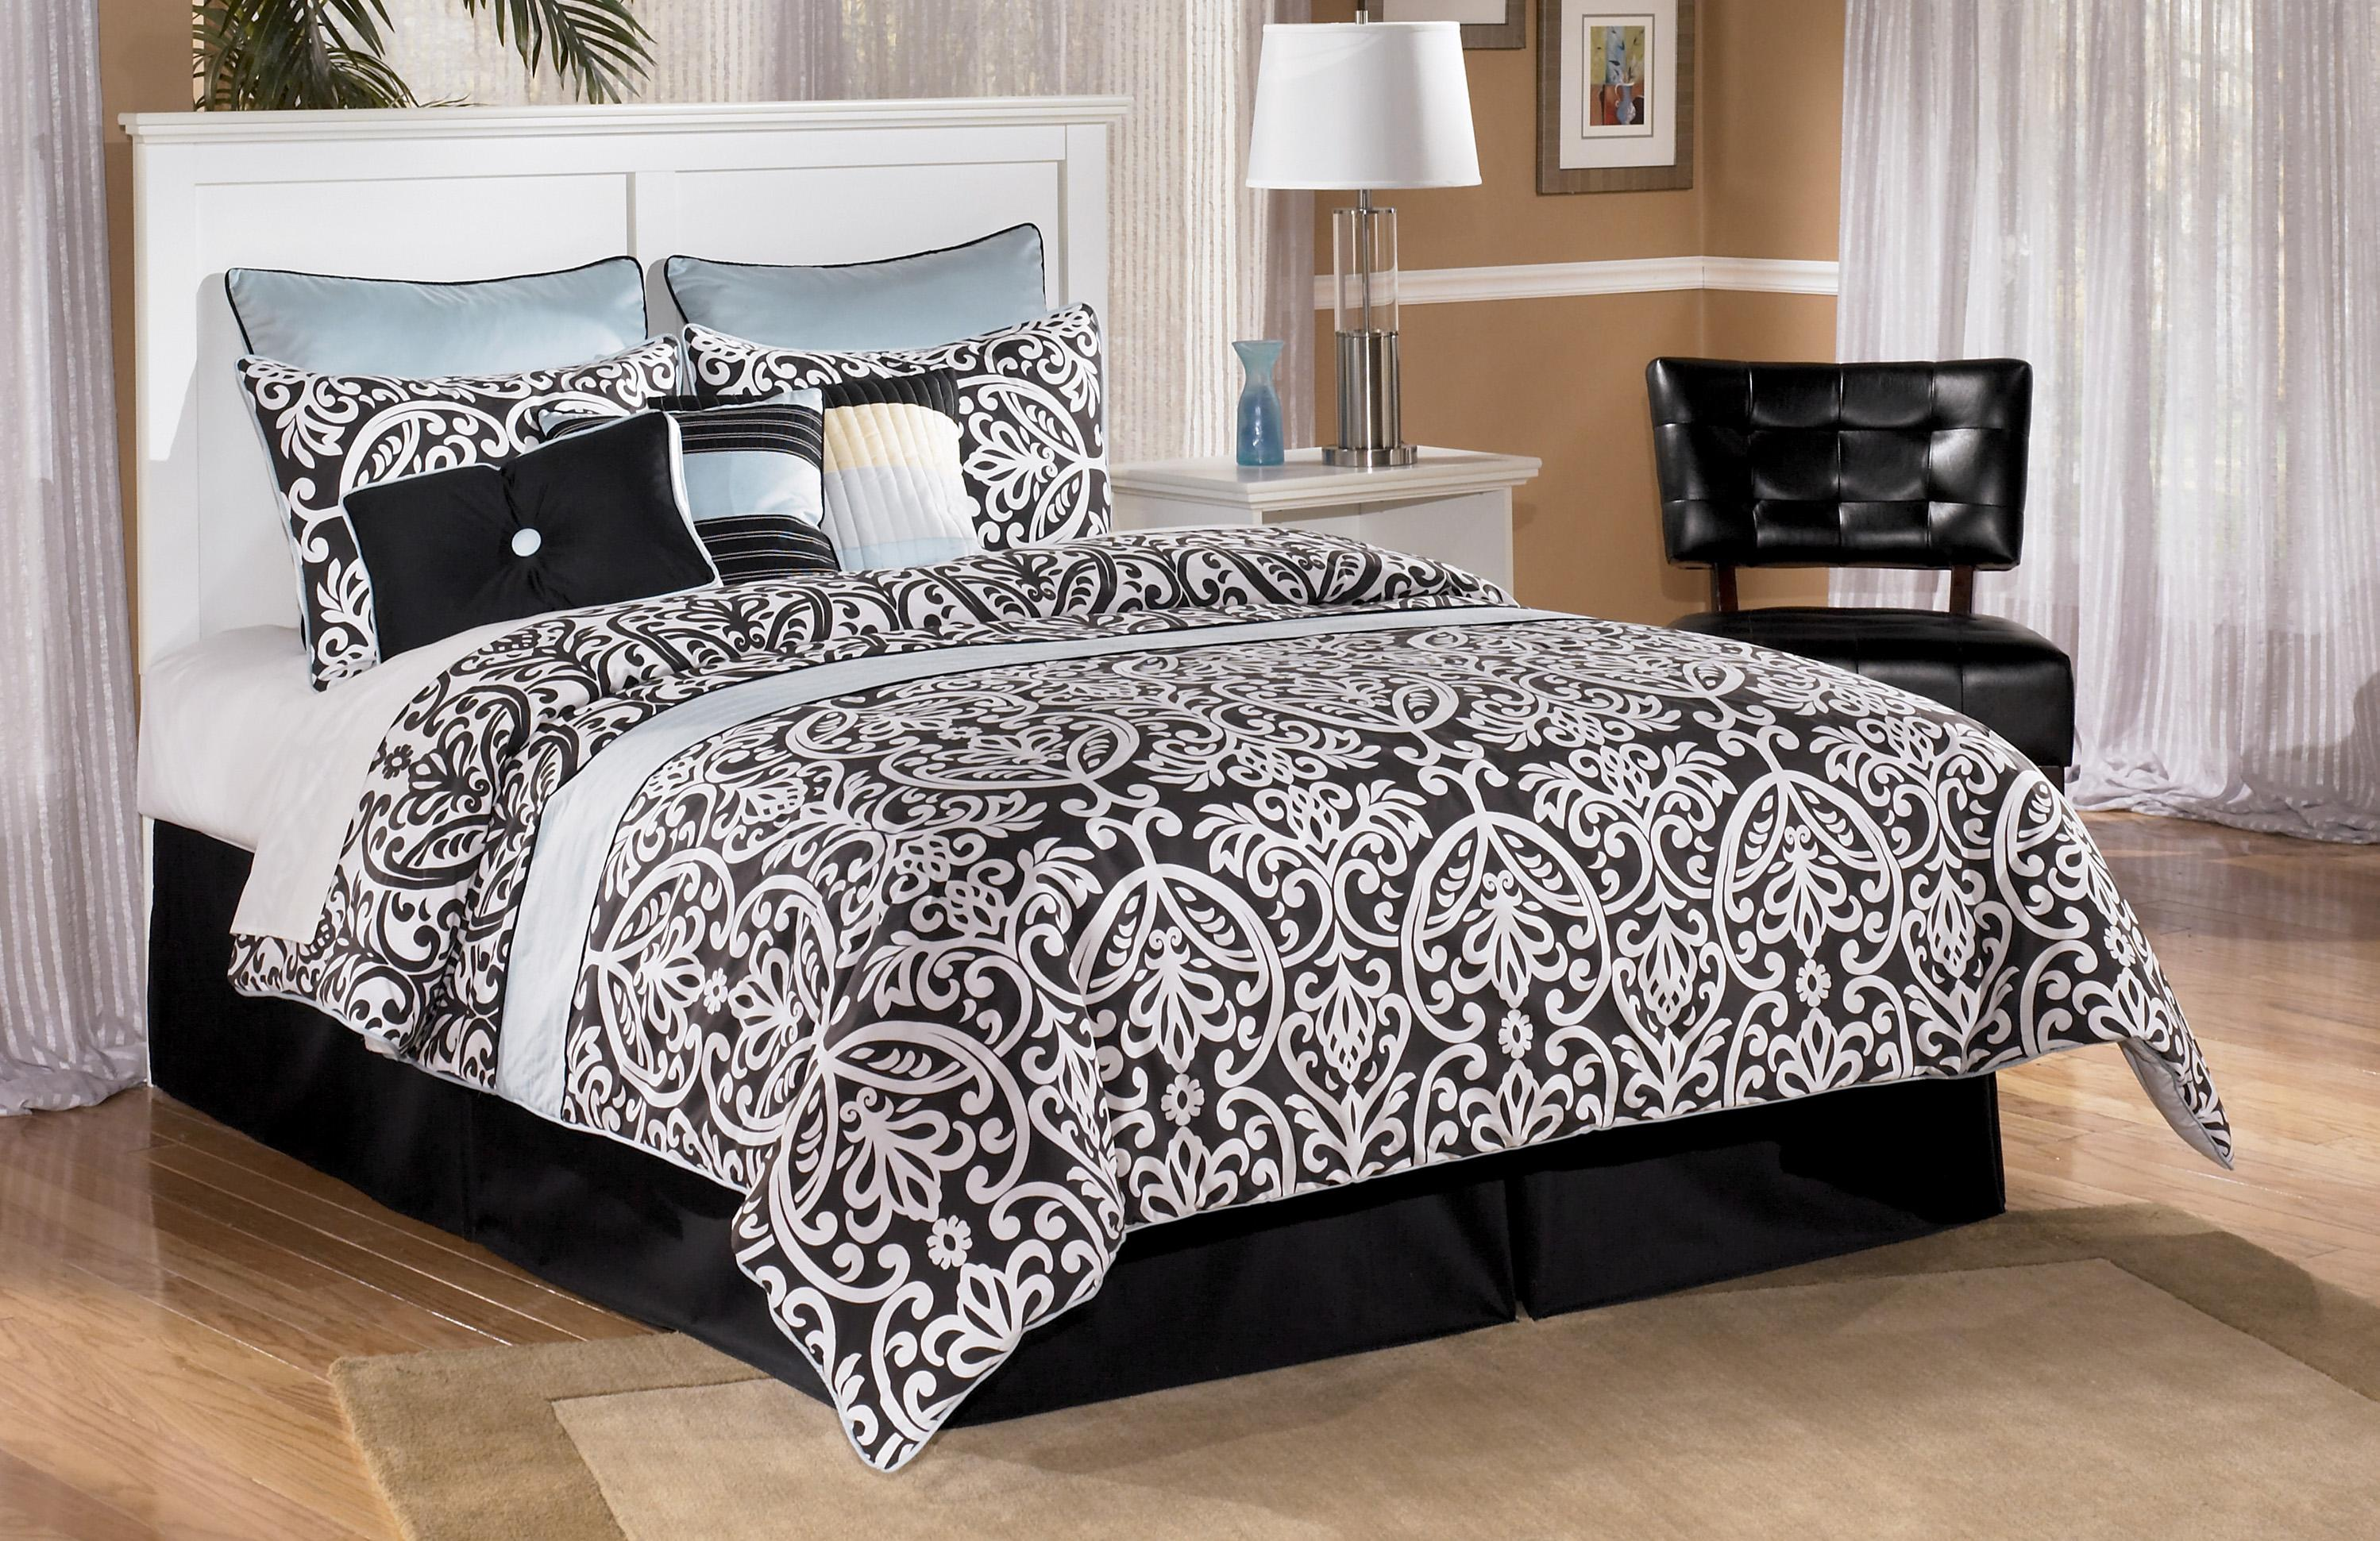 Bostwick Shoals Full Panel Headboard by Signature Design by Ashley at Zak's Warehouse Clearance Center